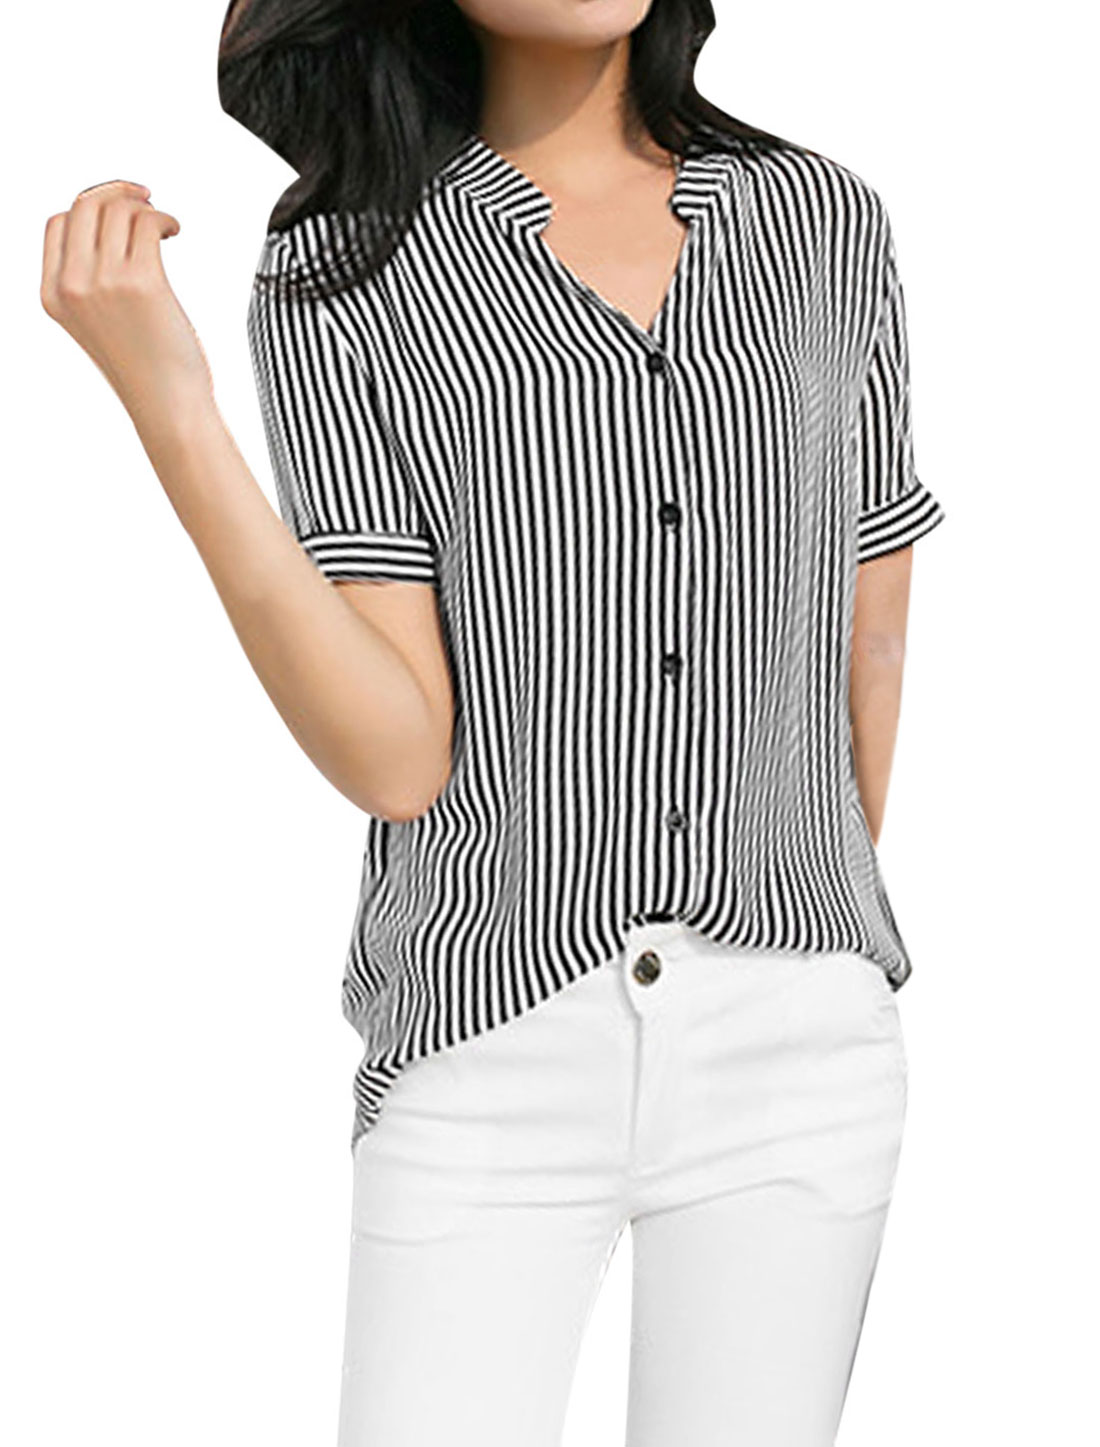 Ladies Short Sleeve Vertical Stripes Irregular Hem Shirt Black White S